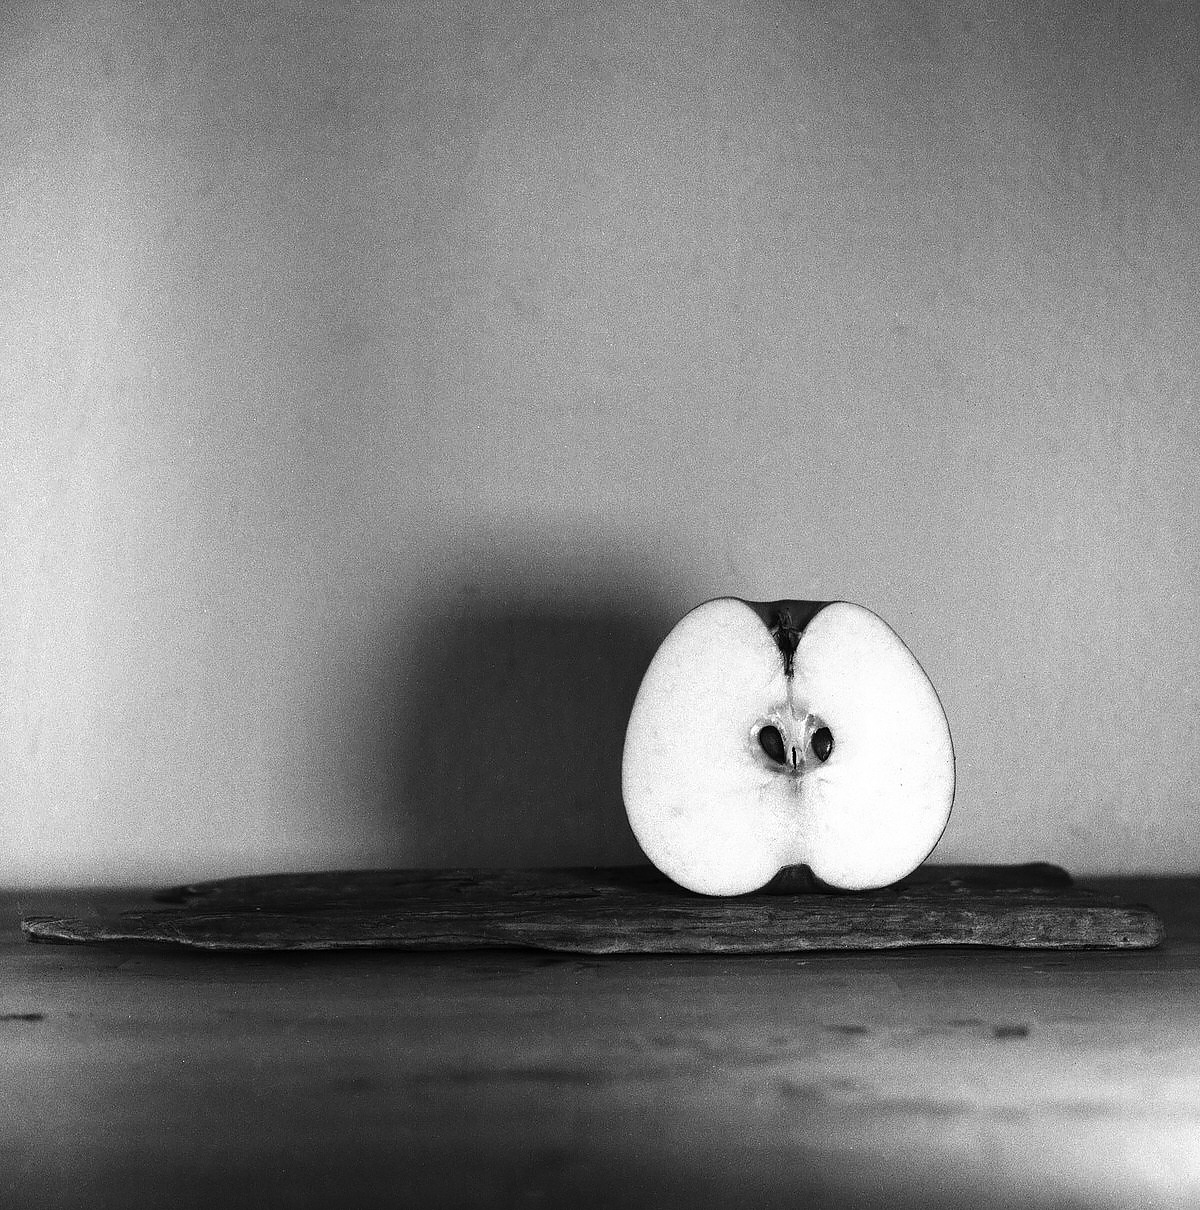 Apple – Still Life Photography - Yashica MAT-124 with Fomapan 200 Creative